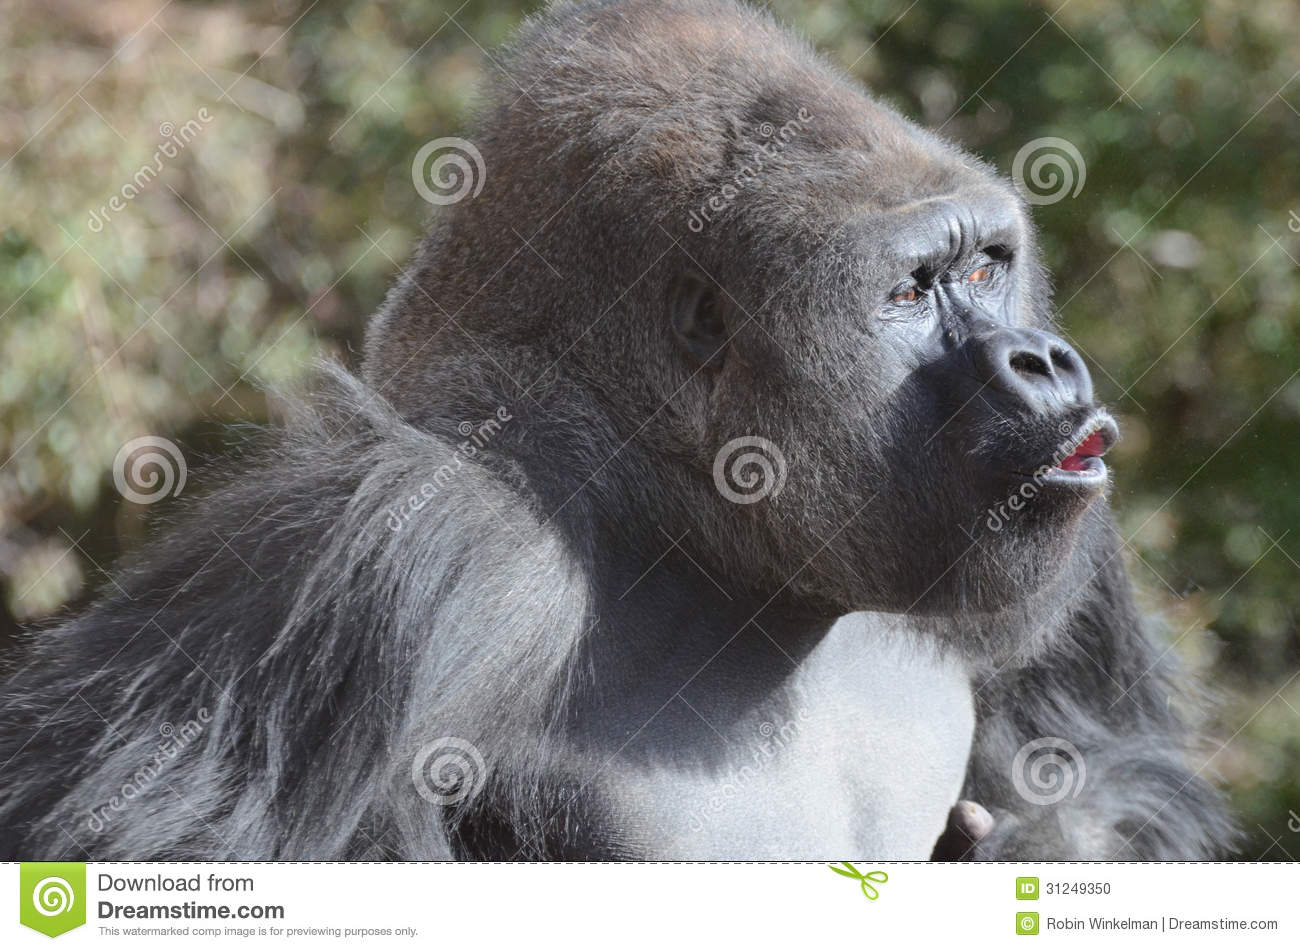 Stock Photo Vocalizing Gorilla Male Silver Back Displays Chest Beats V...